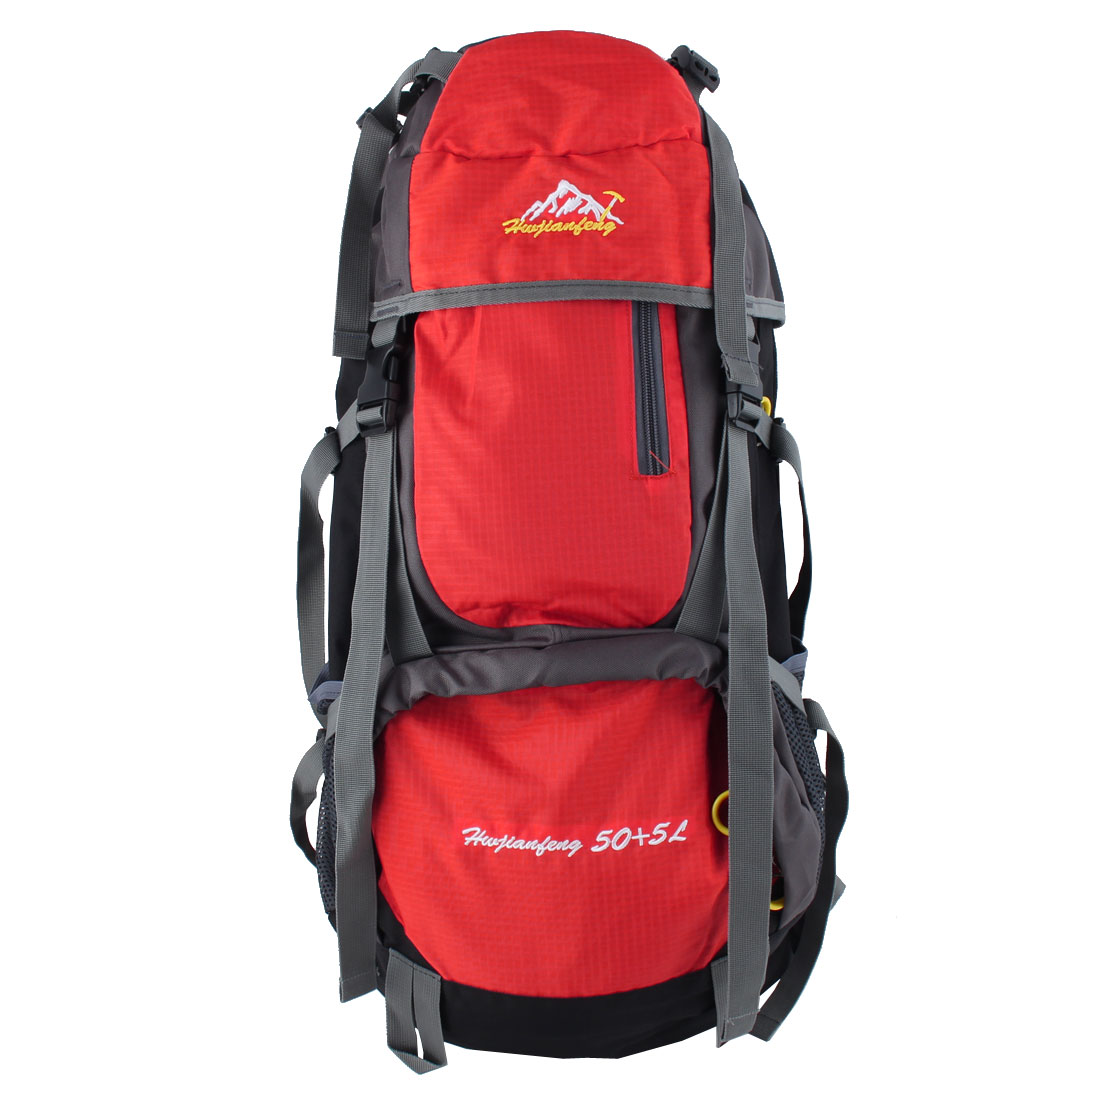 HWJIANFENG Authorized Outdoor Travel Trekking Riding Climbing Mountaineering Pack Water Resistant Sport Bag Hiking Backpack Daypack Red 55L